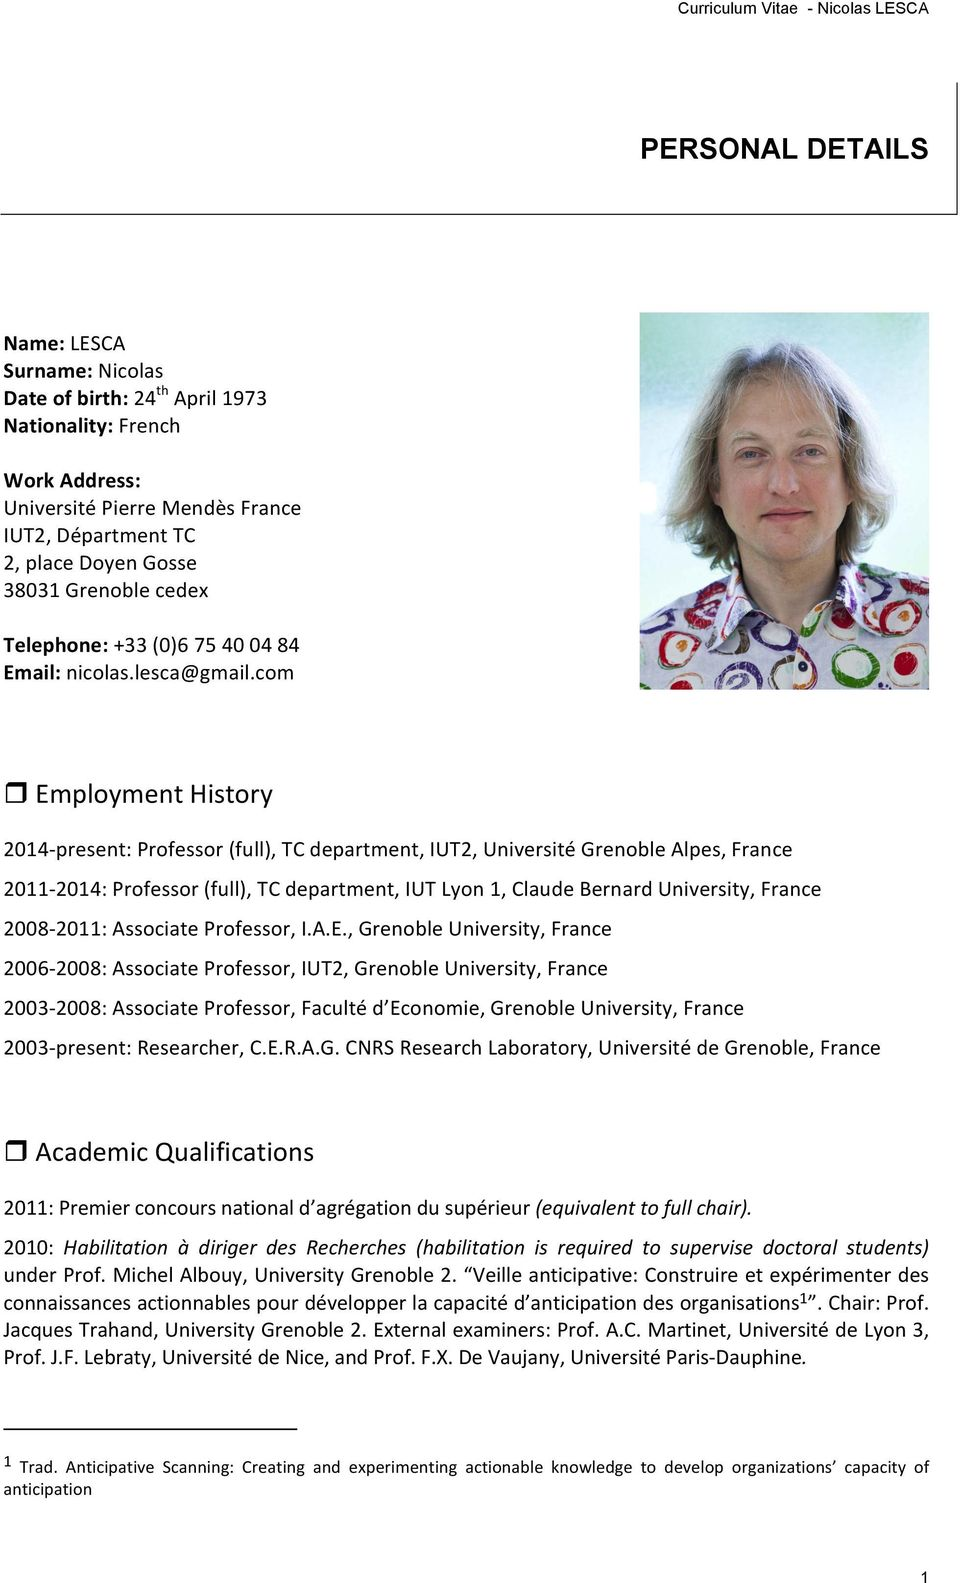 com EmploymentHistory 2014Vpresent:Professor(full),TCdepartment,IUT2,UniversitéGrenobleAlpes,France 2011V2014:Professor(full),TCdepartment,IUTLyon1,ClaudeBernardUniversity,France